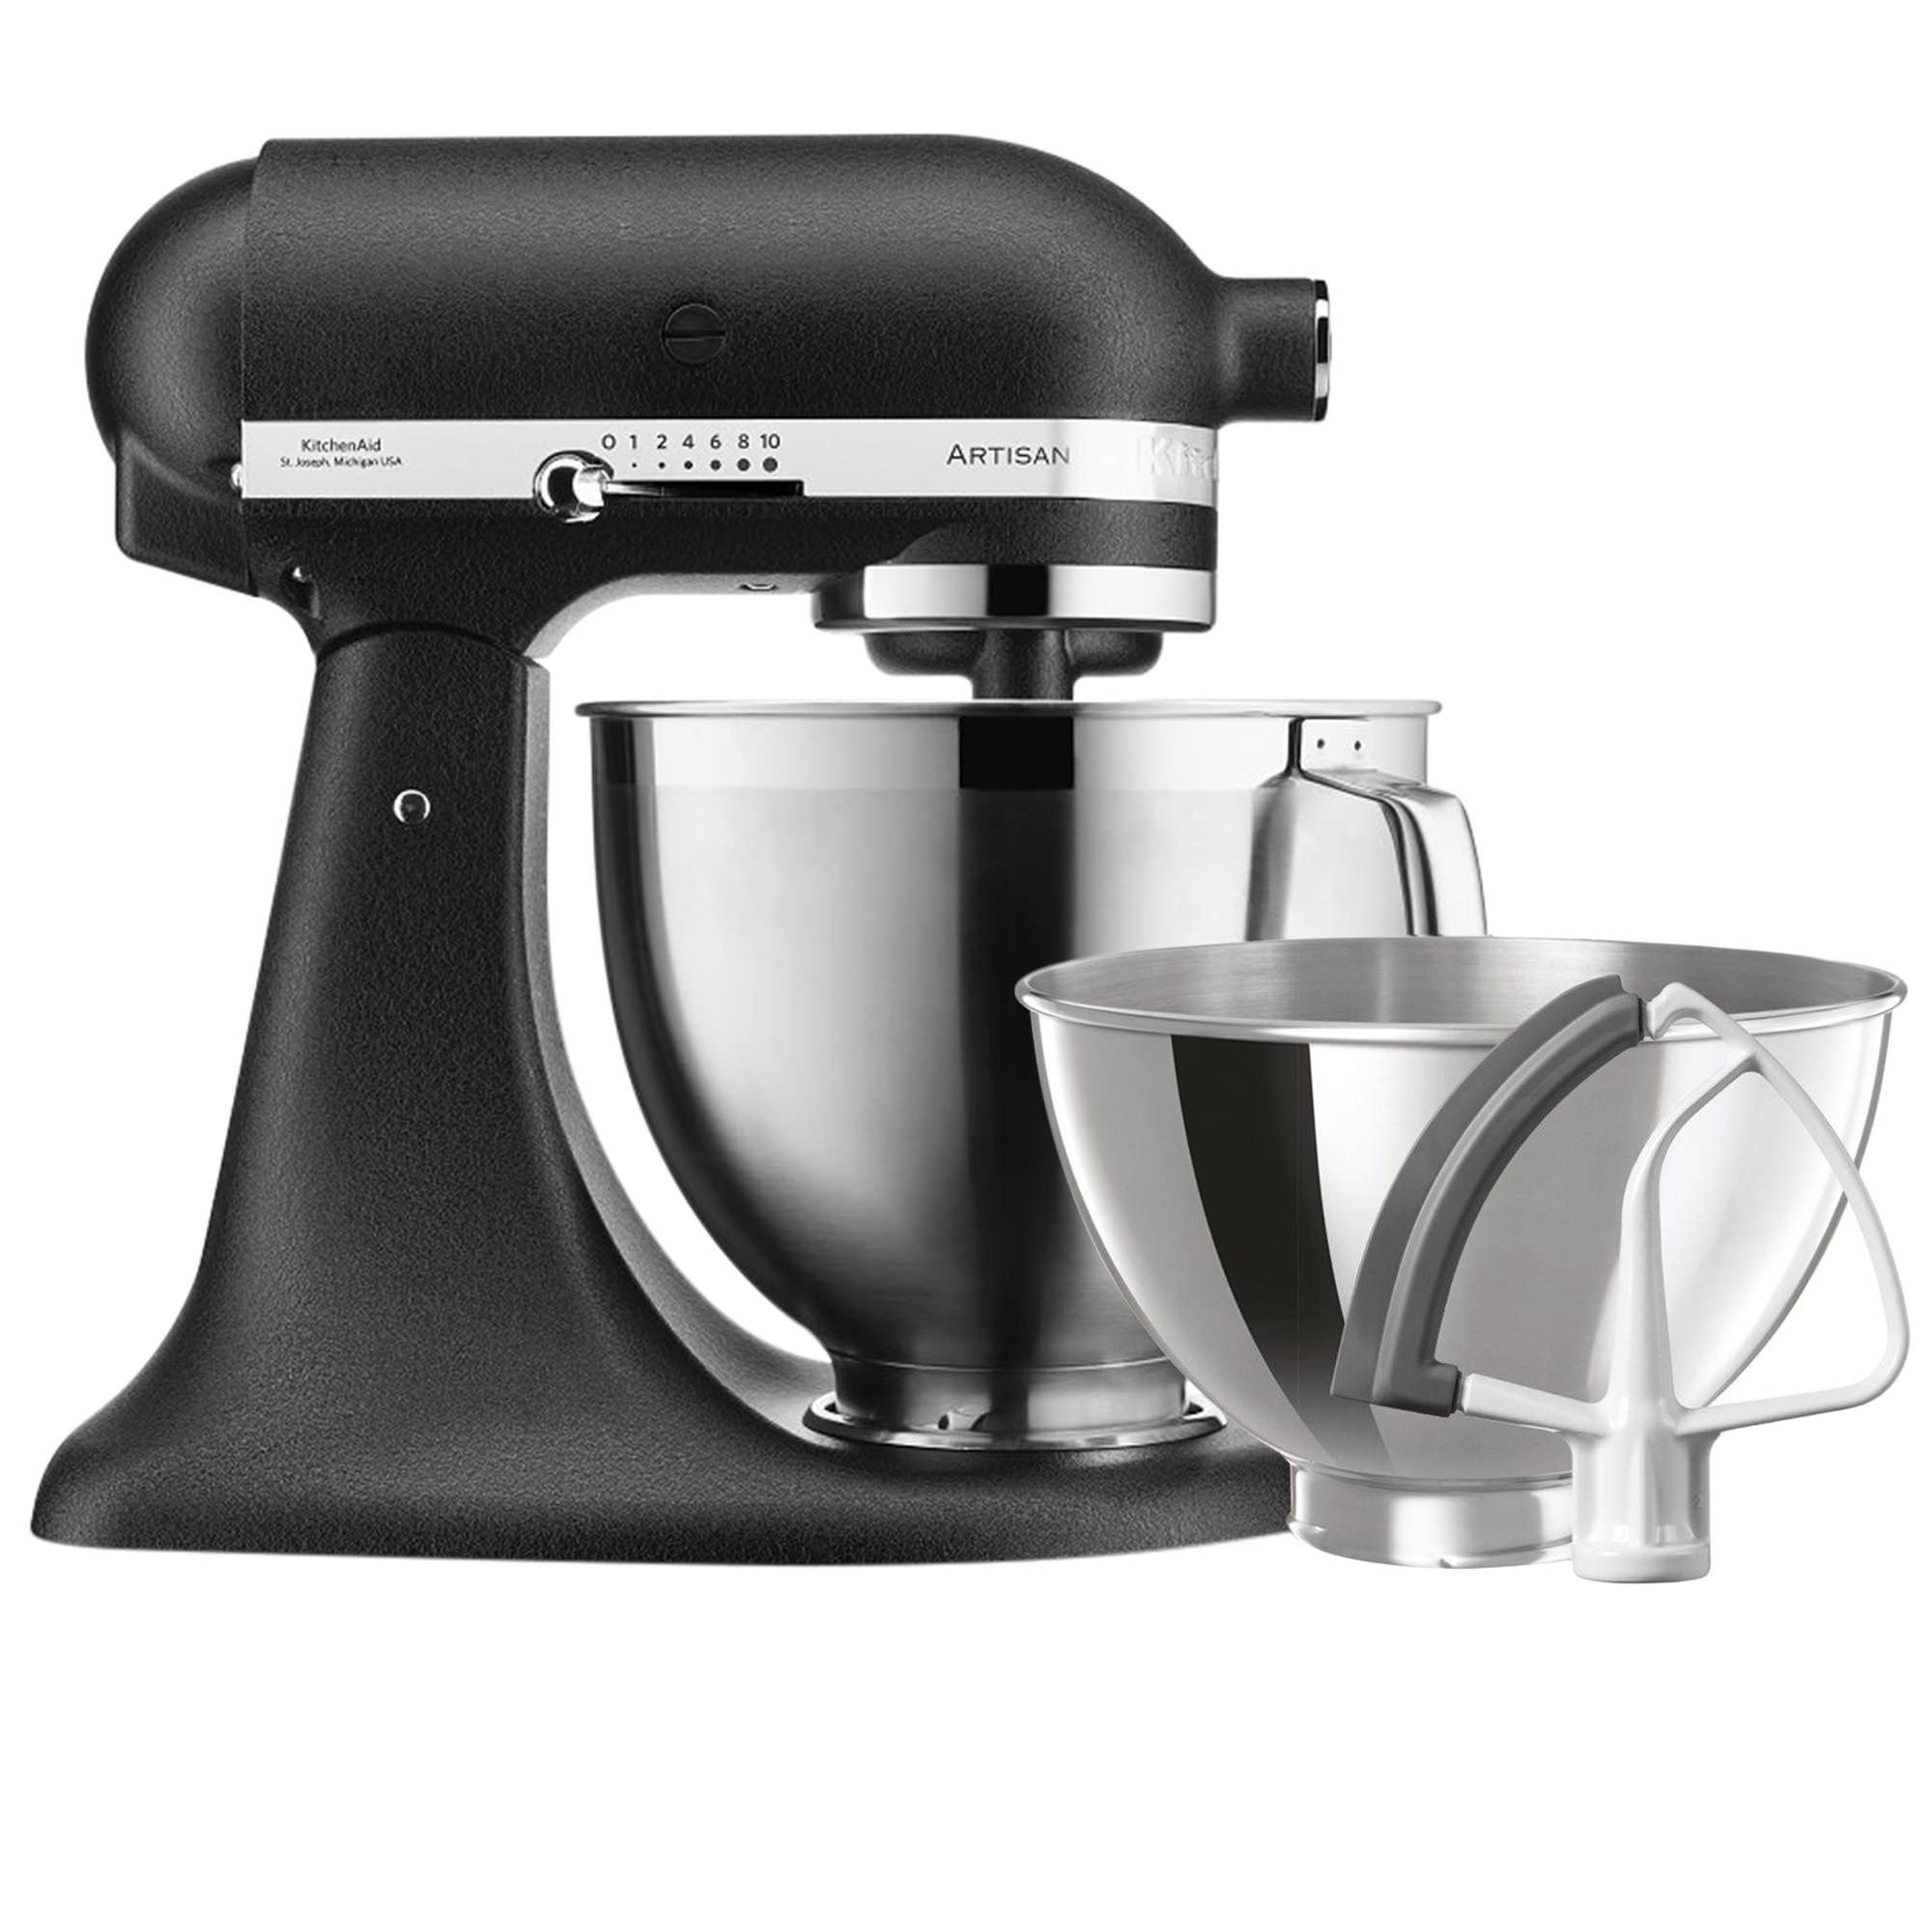 KitchenAid Artisan KSM177 Stand Mixer Cast Iron Black